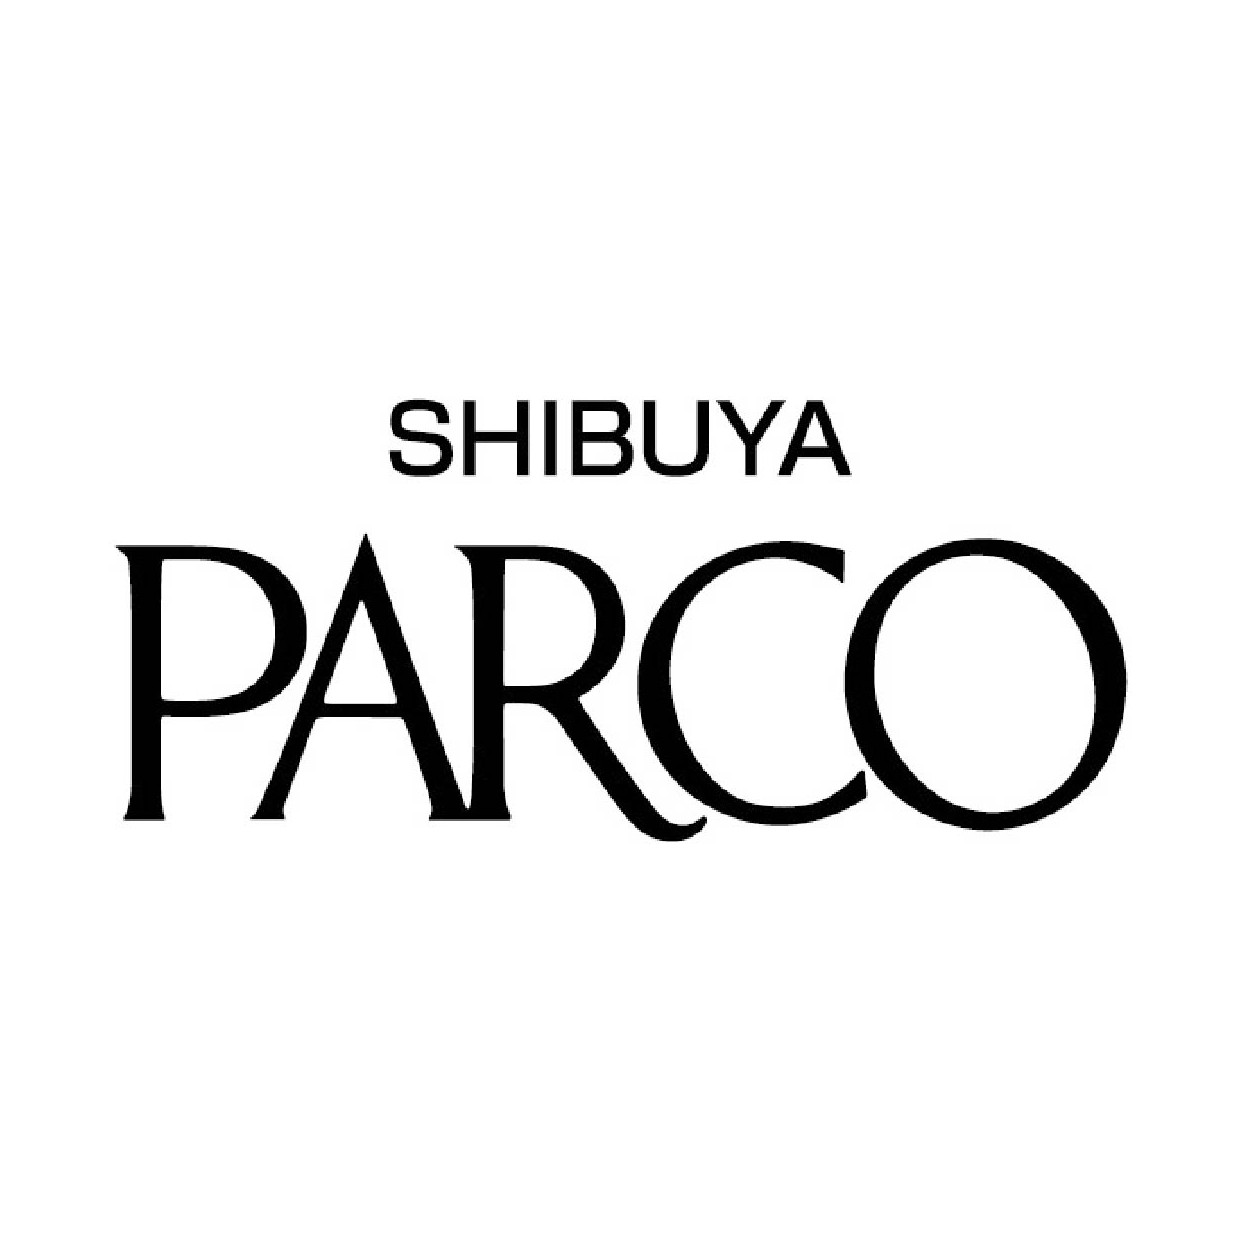 News that is important to customer of the use in Shibuya PARCO